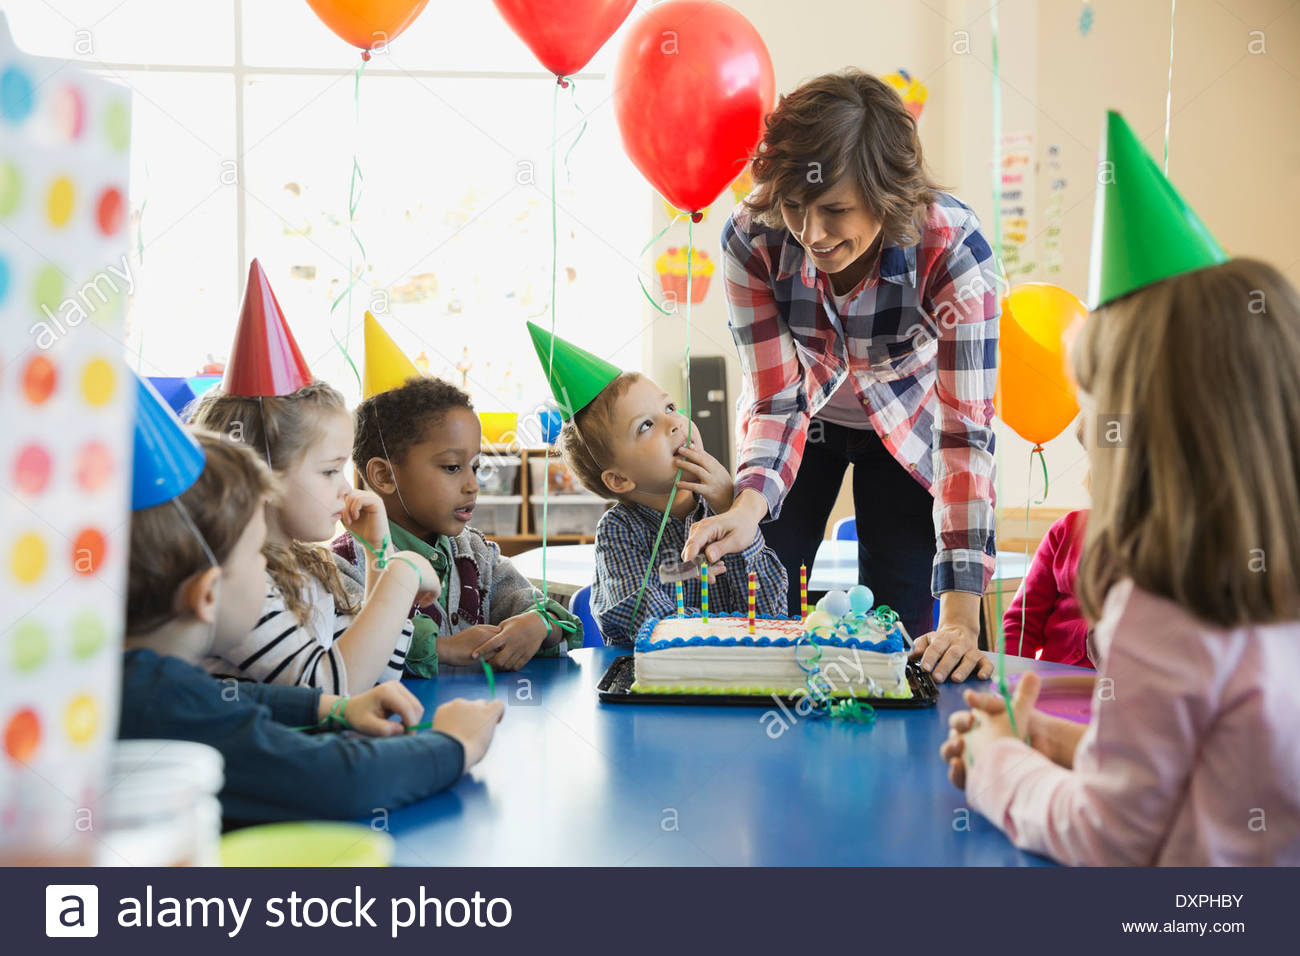 Teacher and kids celebrating birthday in school - Stock Image